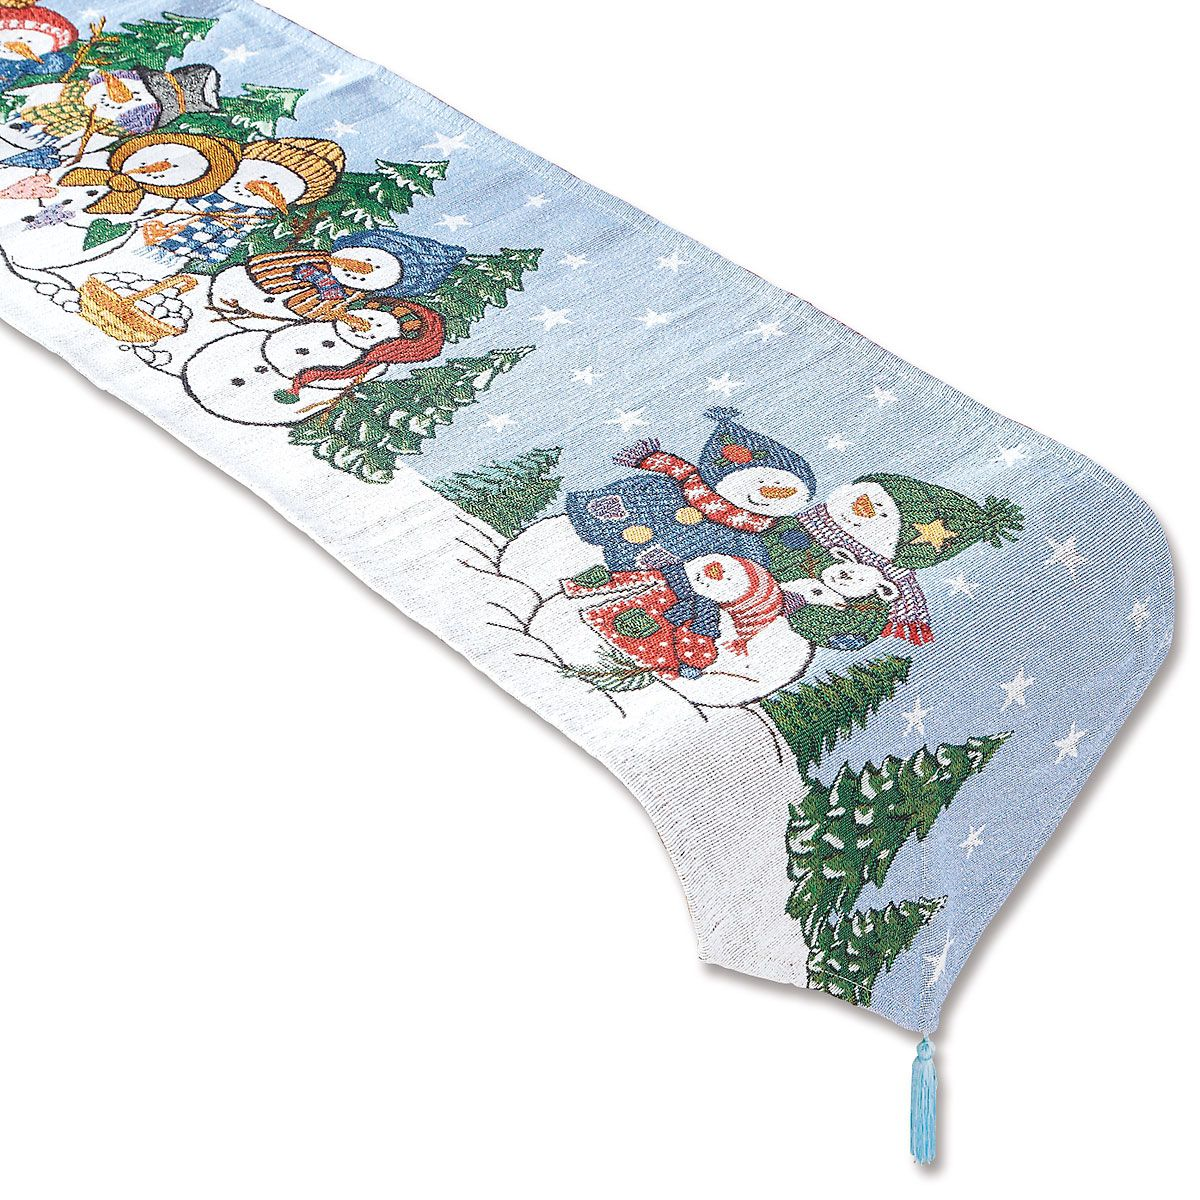 Snowman Tapestry Table Runner